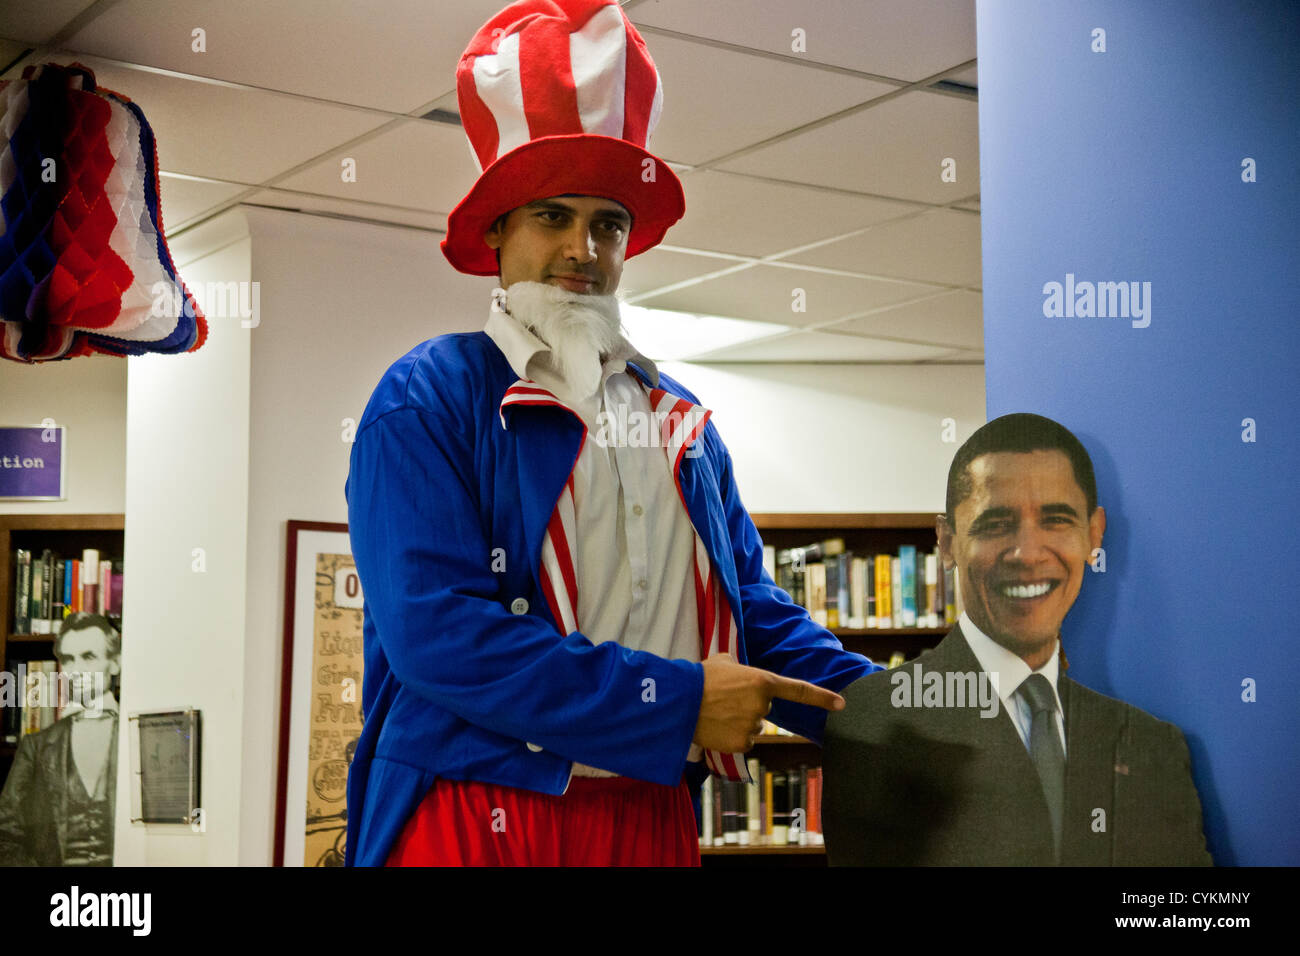 Sri Kulkarni, Director of the American Center in Jerusalem, poses with a cardboard cutout of President Barack Obama - Stock Image